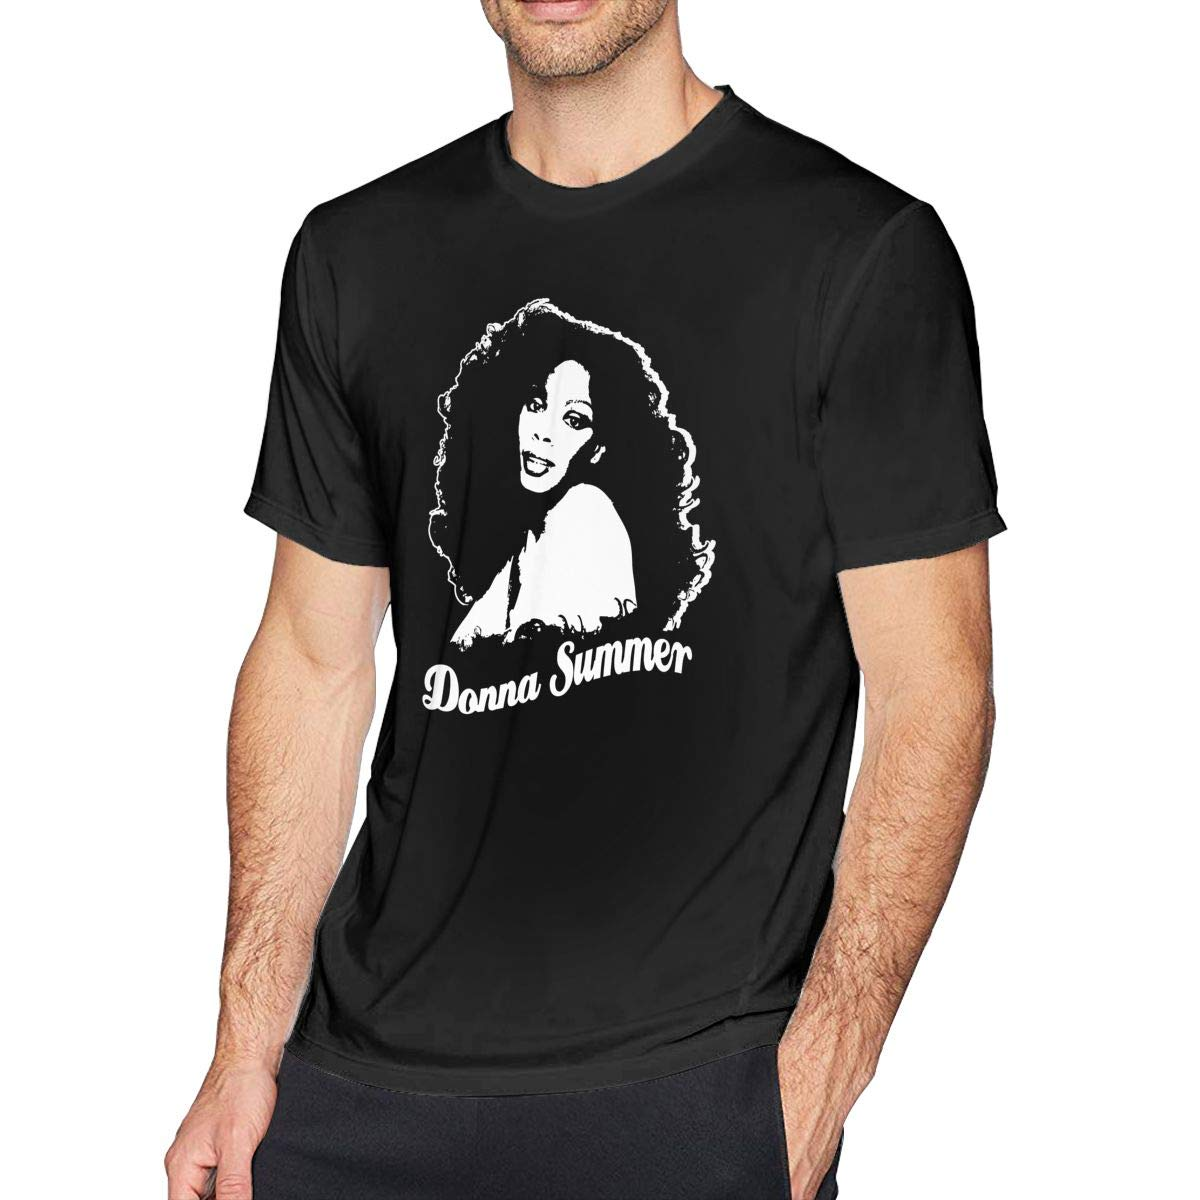 Donna Summer Cotton Youth Man Soft Short Sleeves T Shirt Top Black L